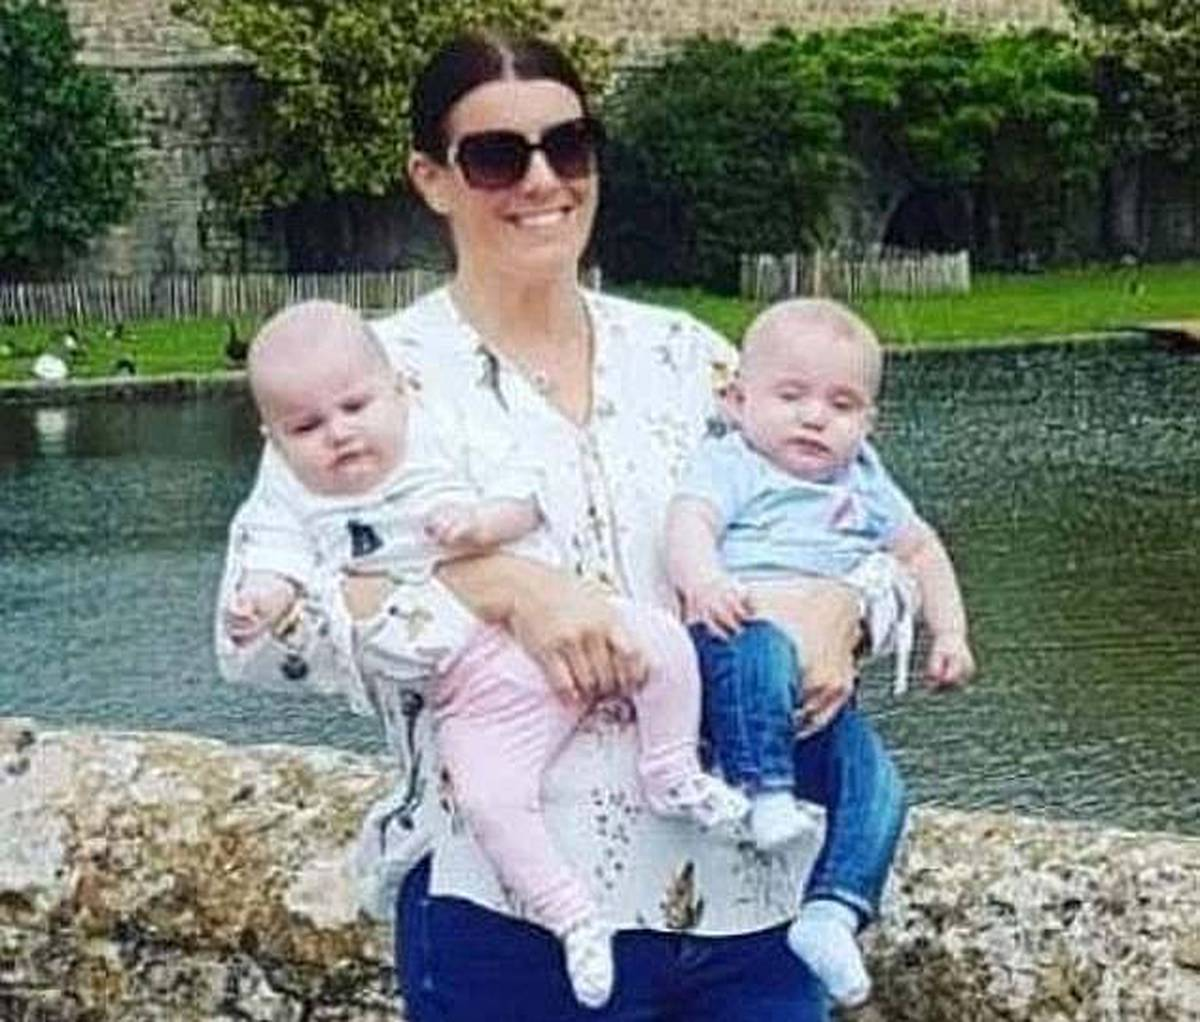 Mum who drowned her twins to make her ex suffer is jailed for 10 years